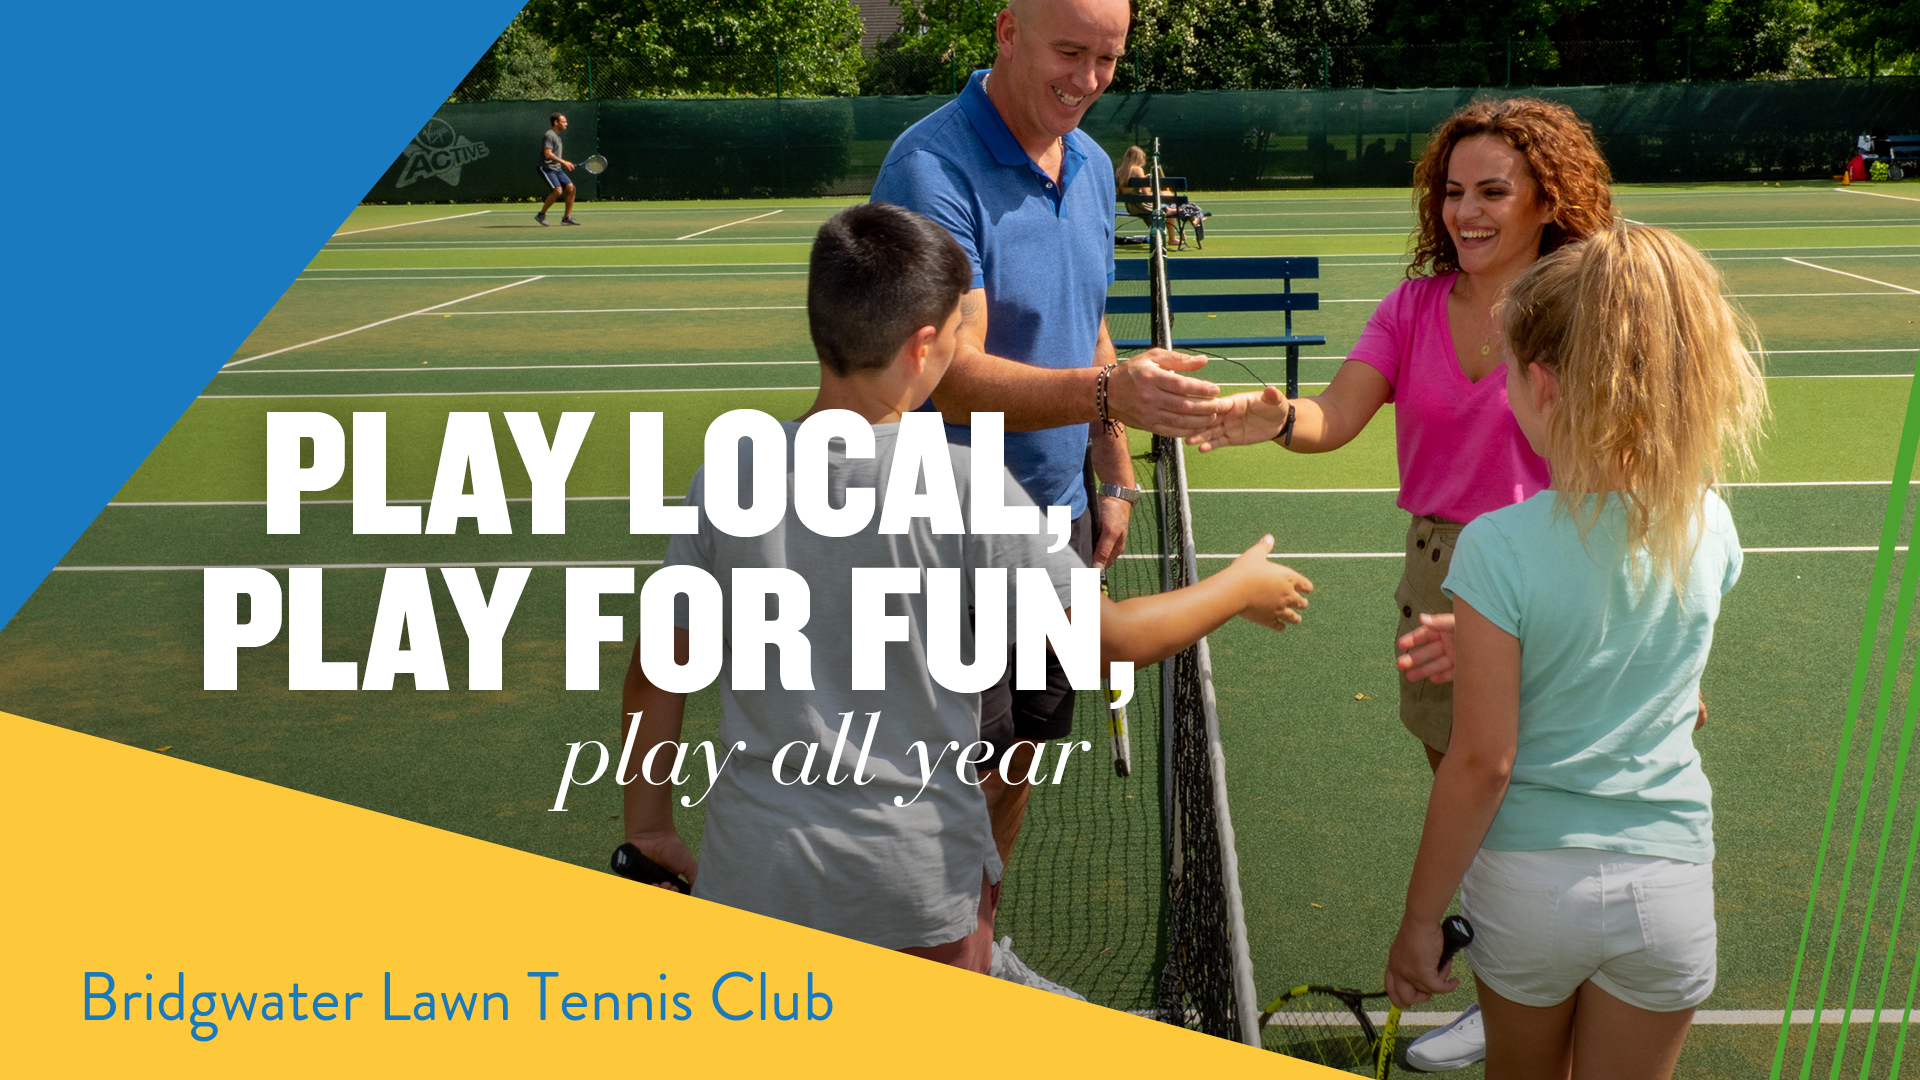 Bridgwater Lawn Tennis Club